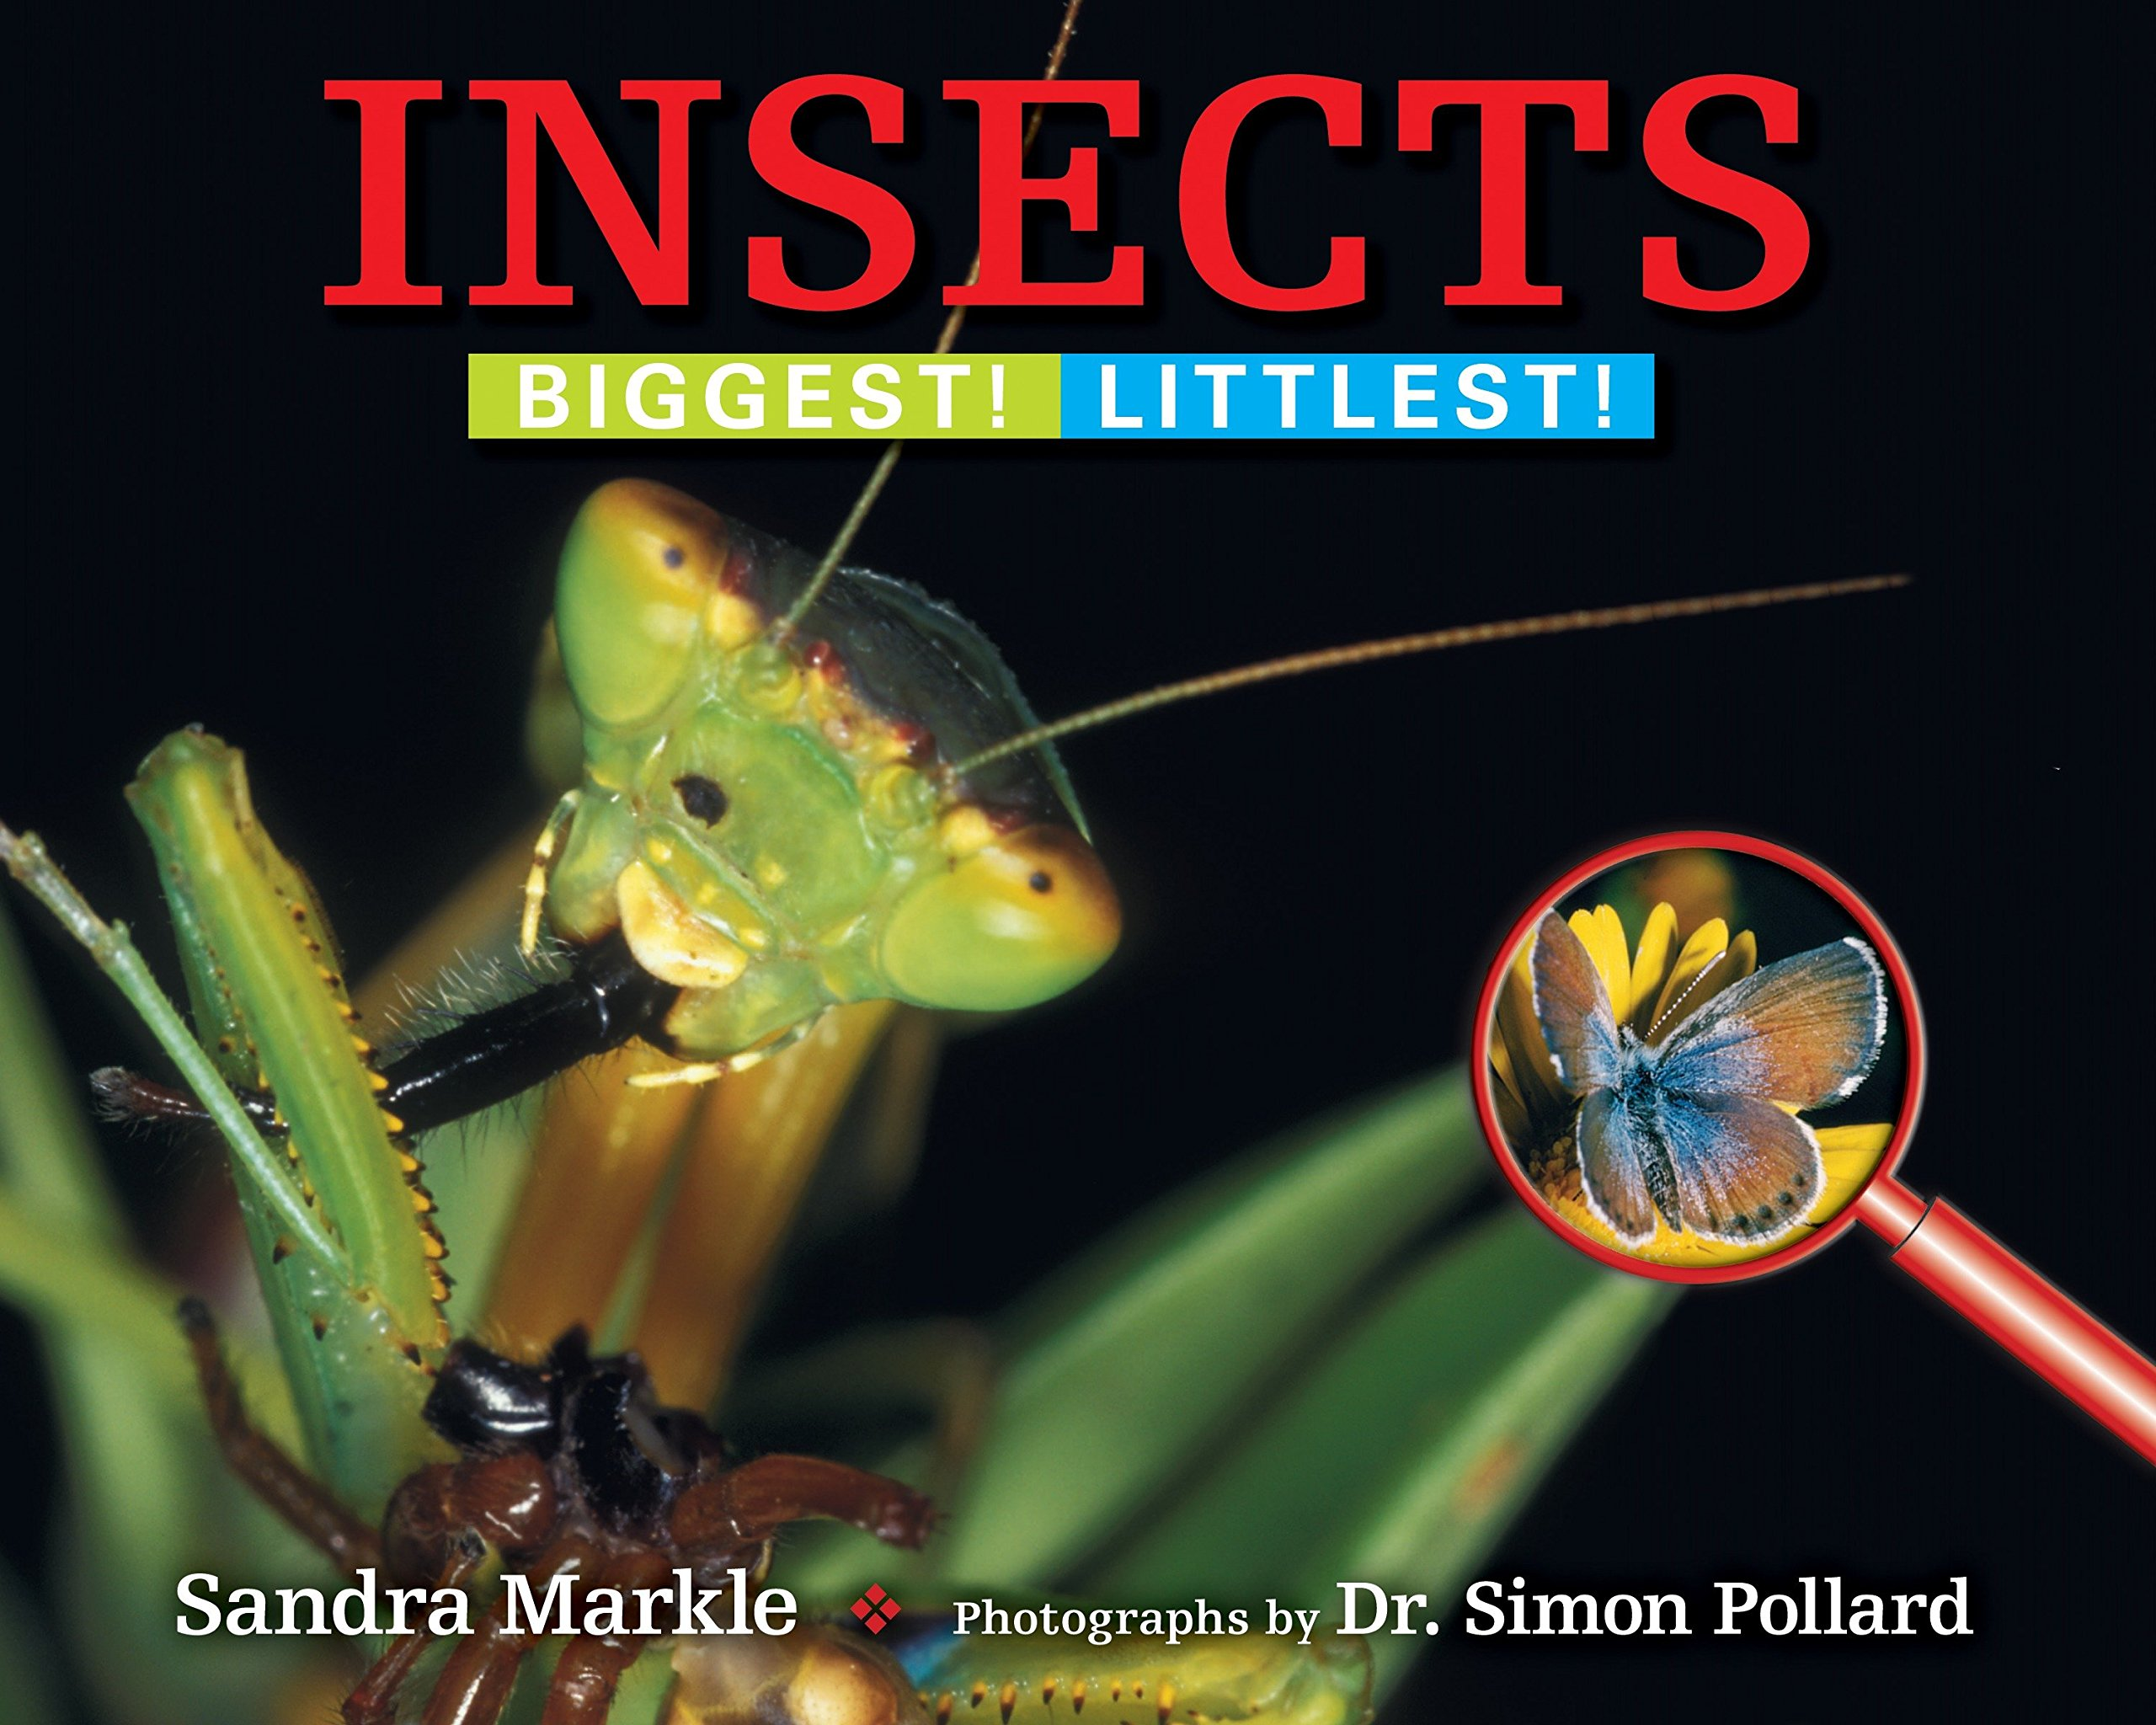 Insects: Biggest! Littlest!